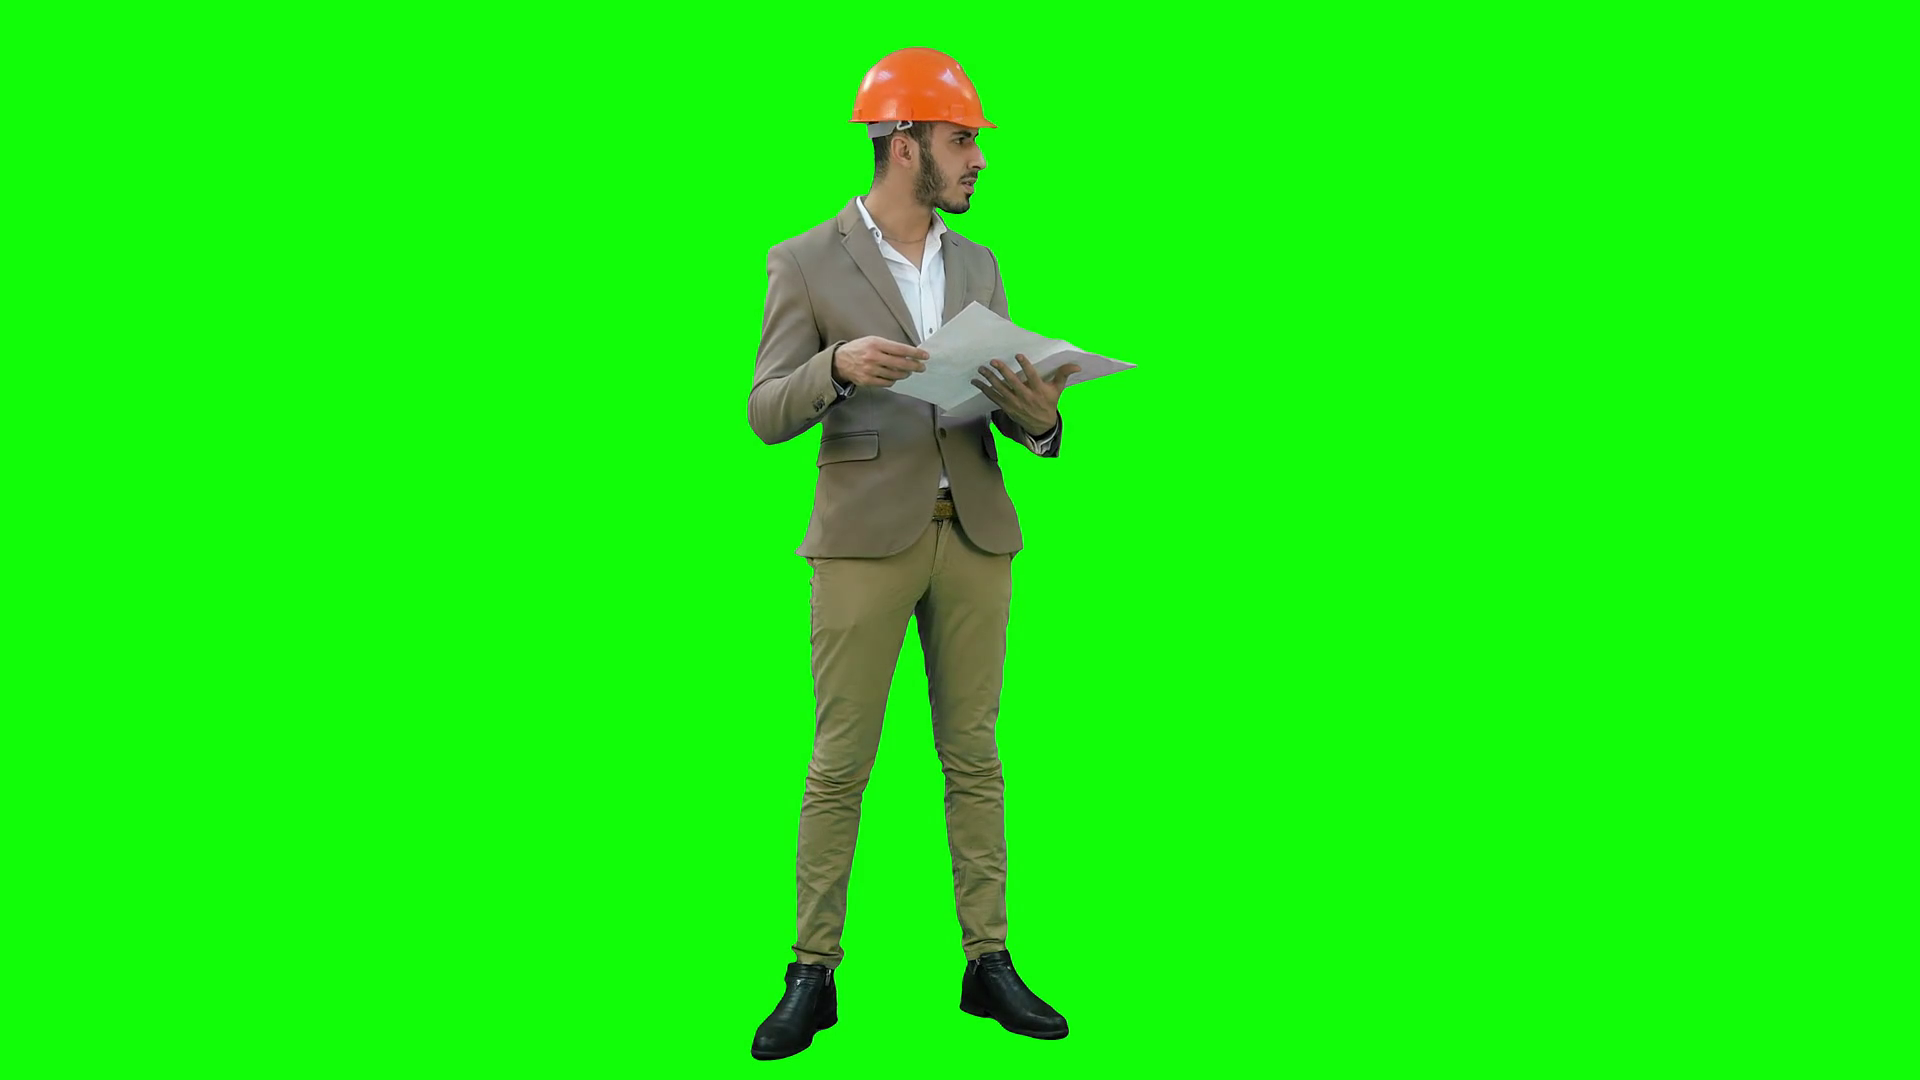 1920x1080 Young Architect In Helmet Checking Construction Plans On A Green